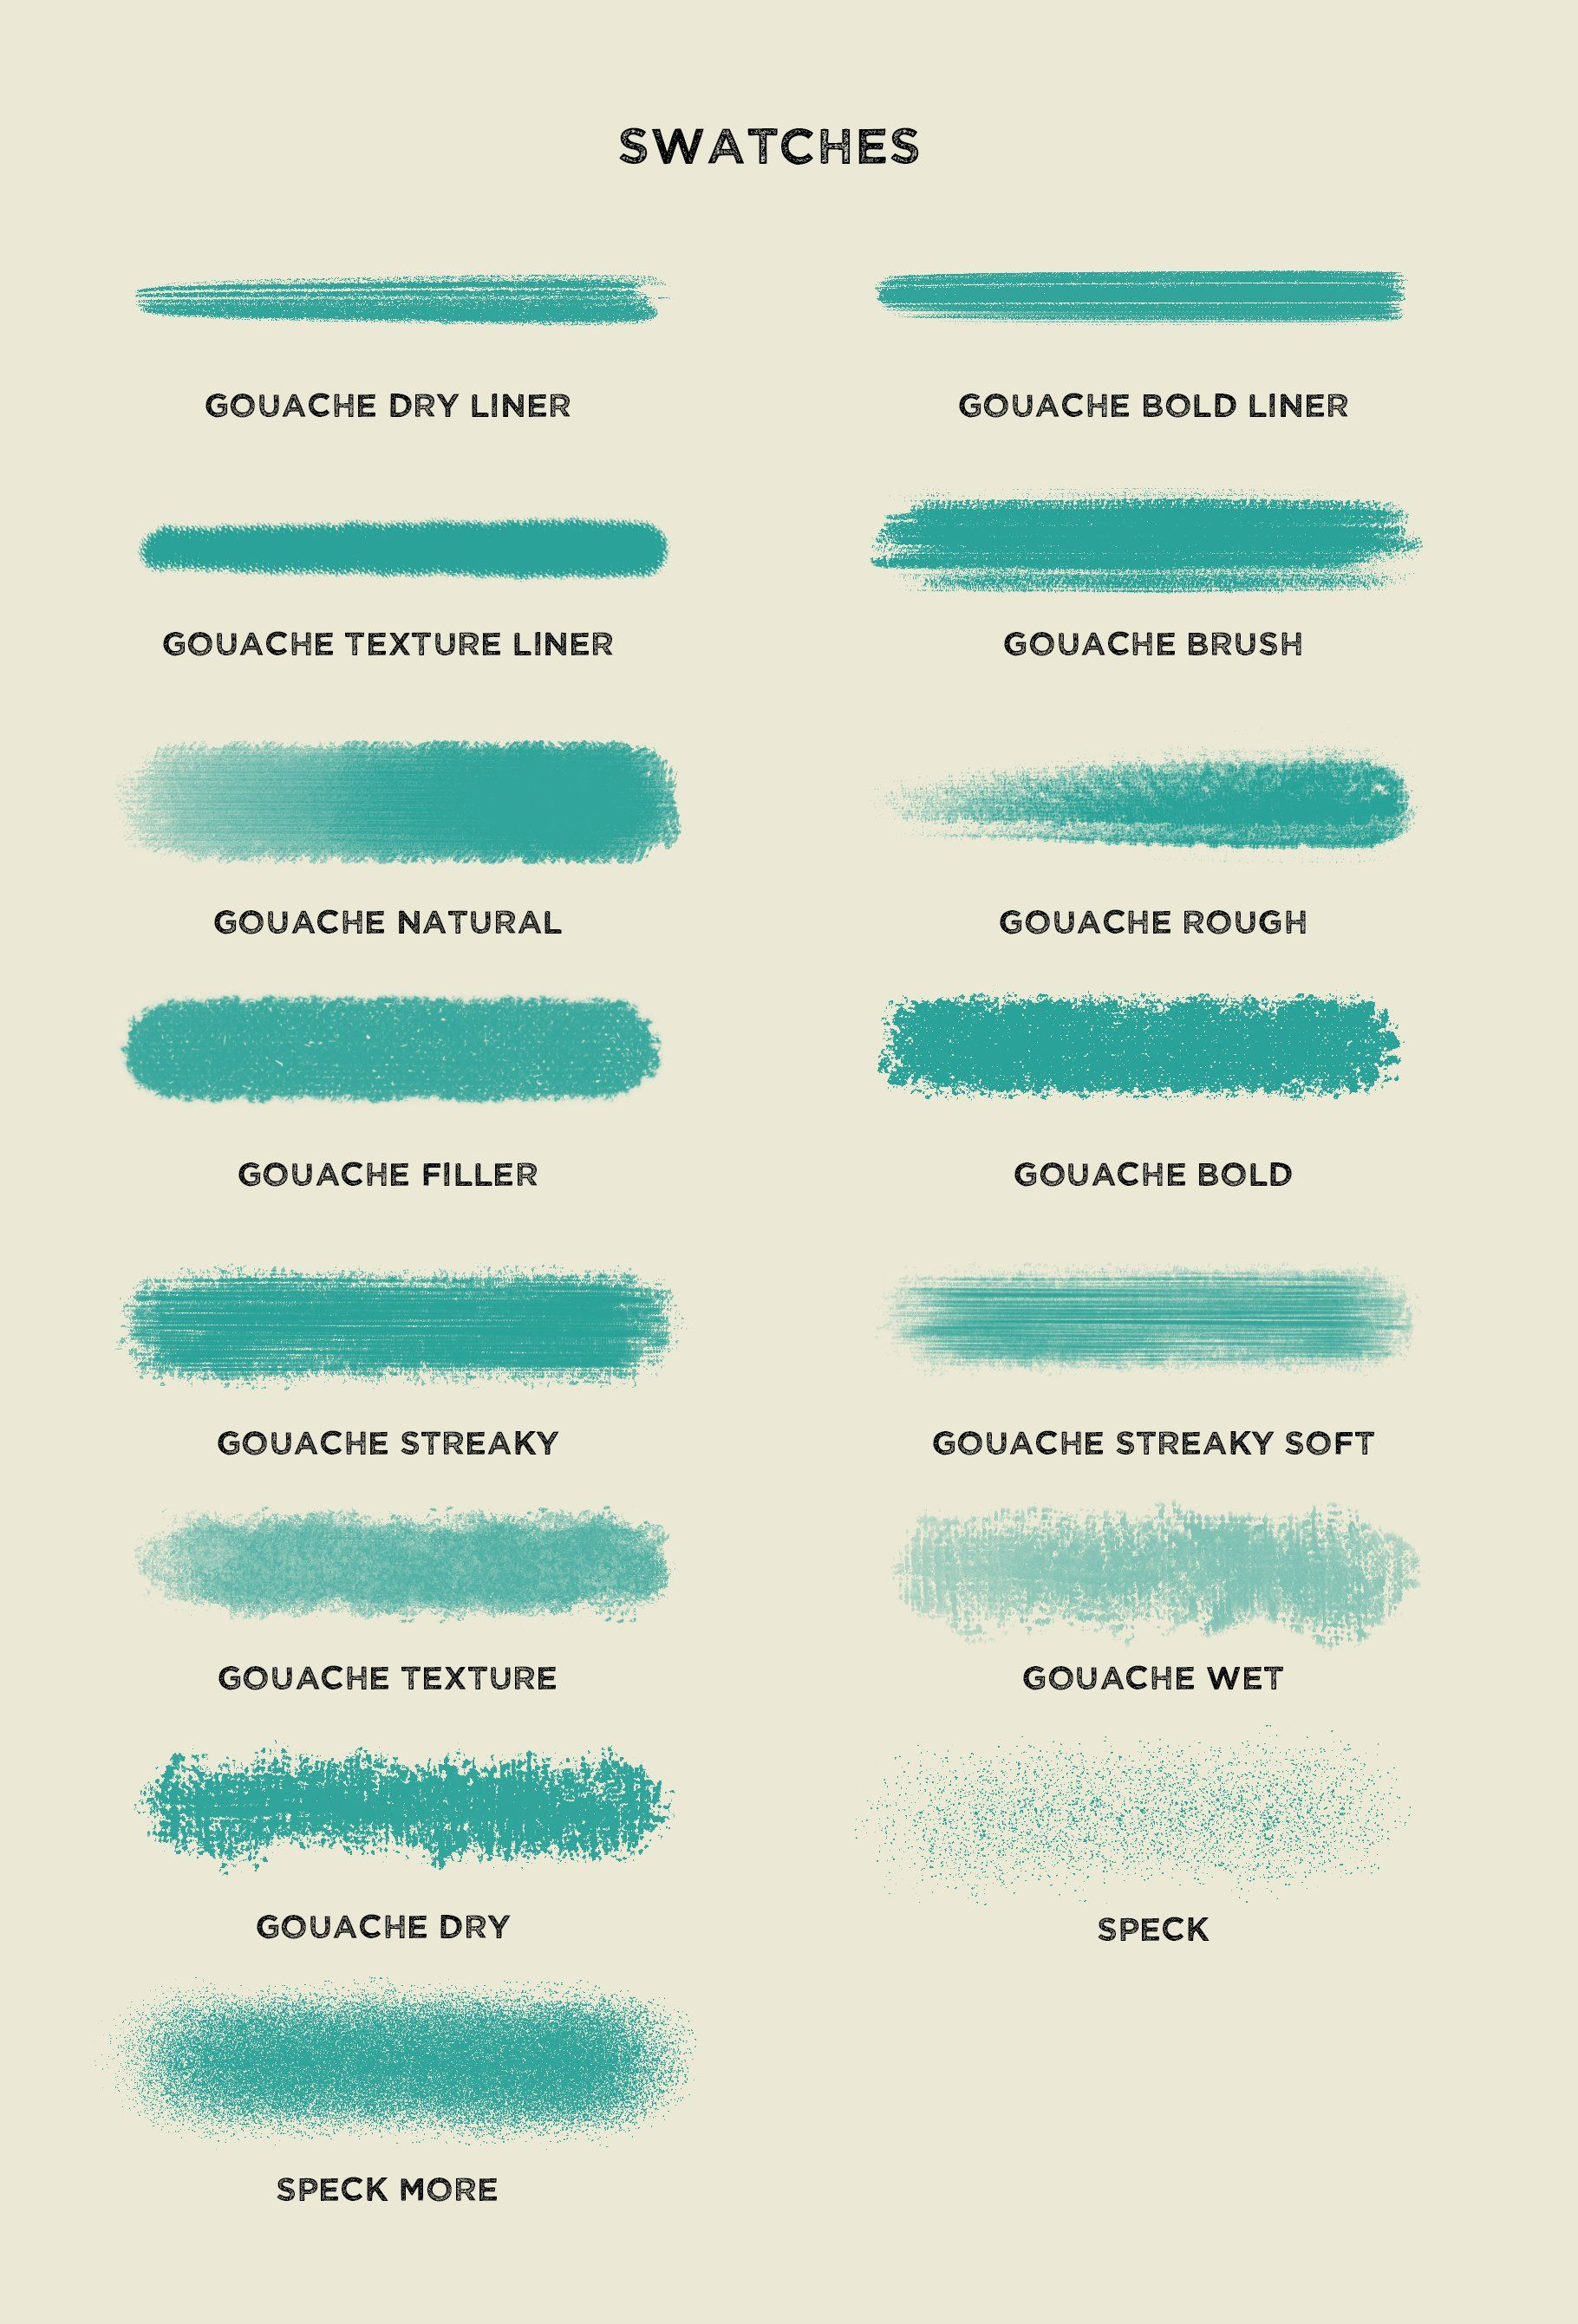 The Gouache Maxpack Brushes For Procreate In 2020 Gouache